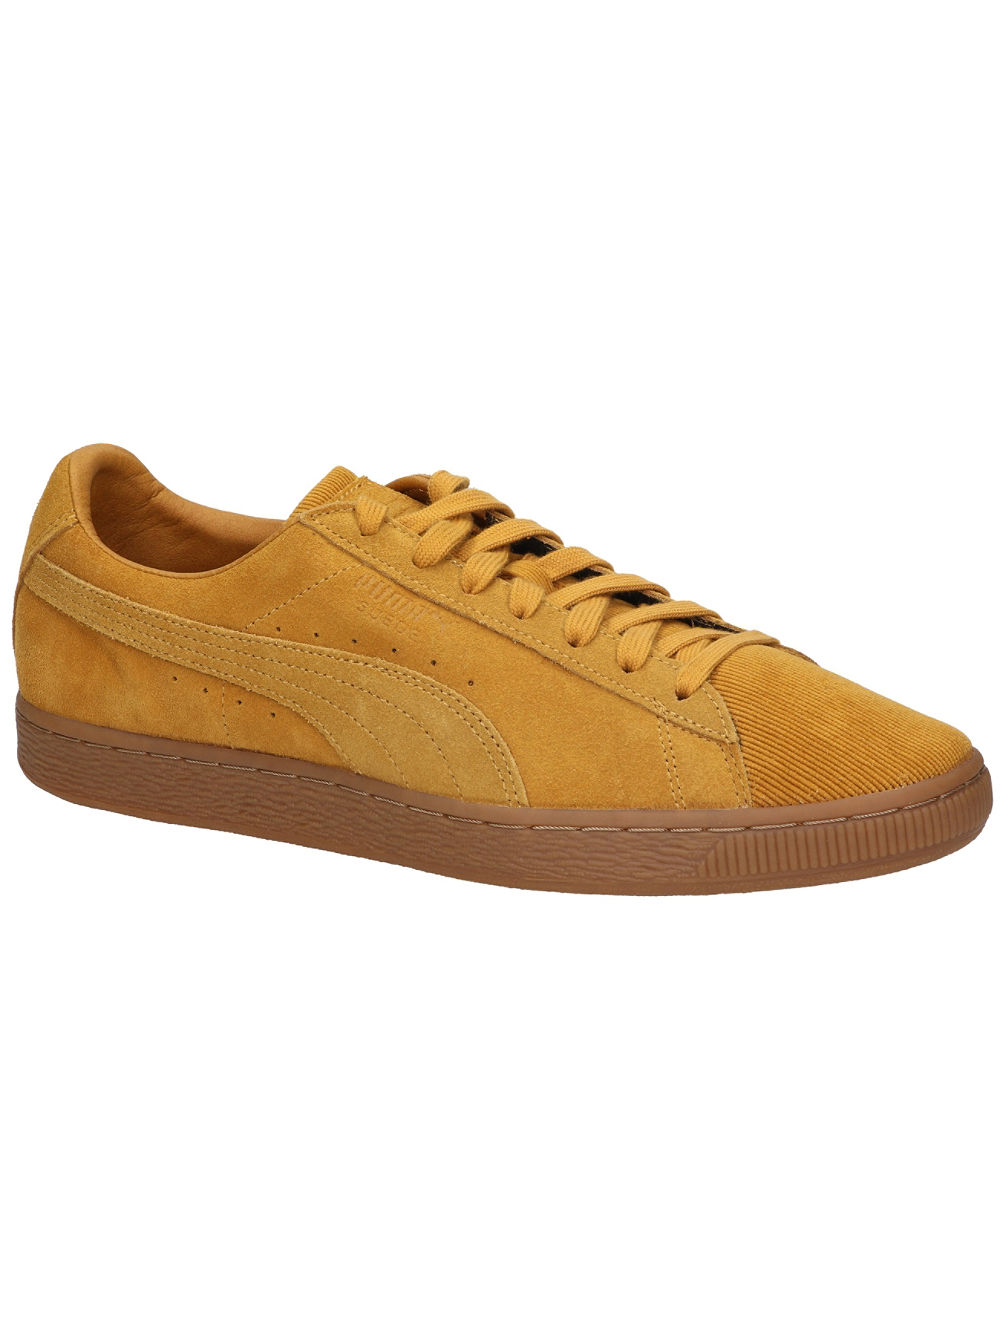 best service 0cad1 74c5f Suede Classic Pincord Sneakers